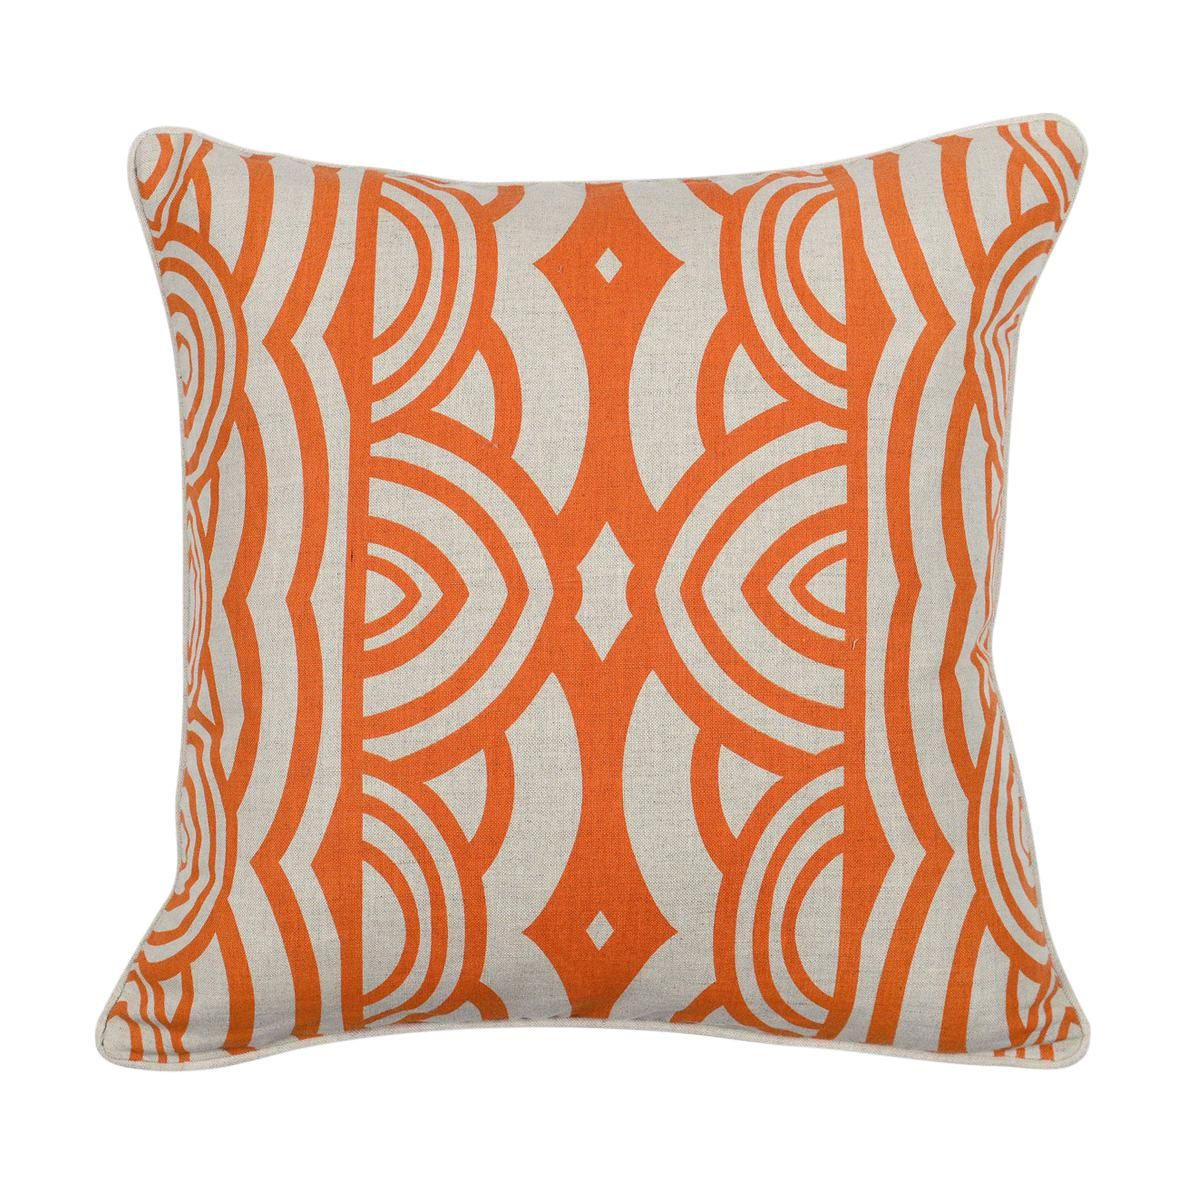 modern orange down pillow  products orange and modern - image of modern orange down pillow